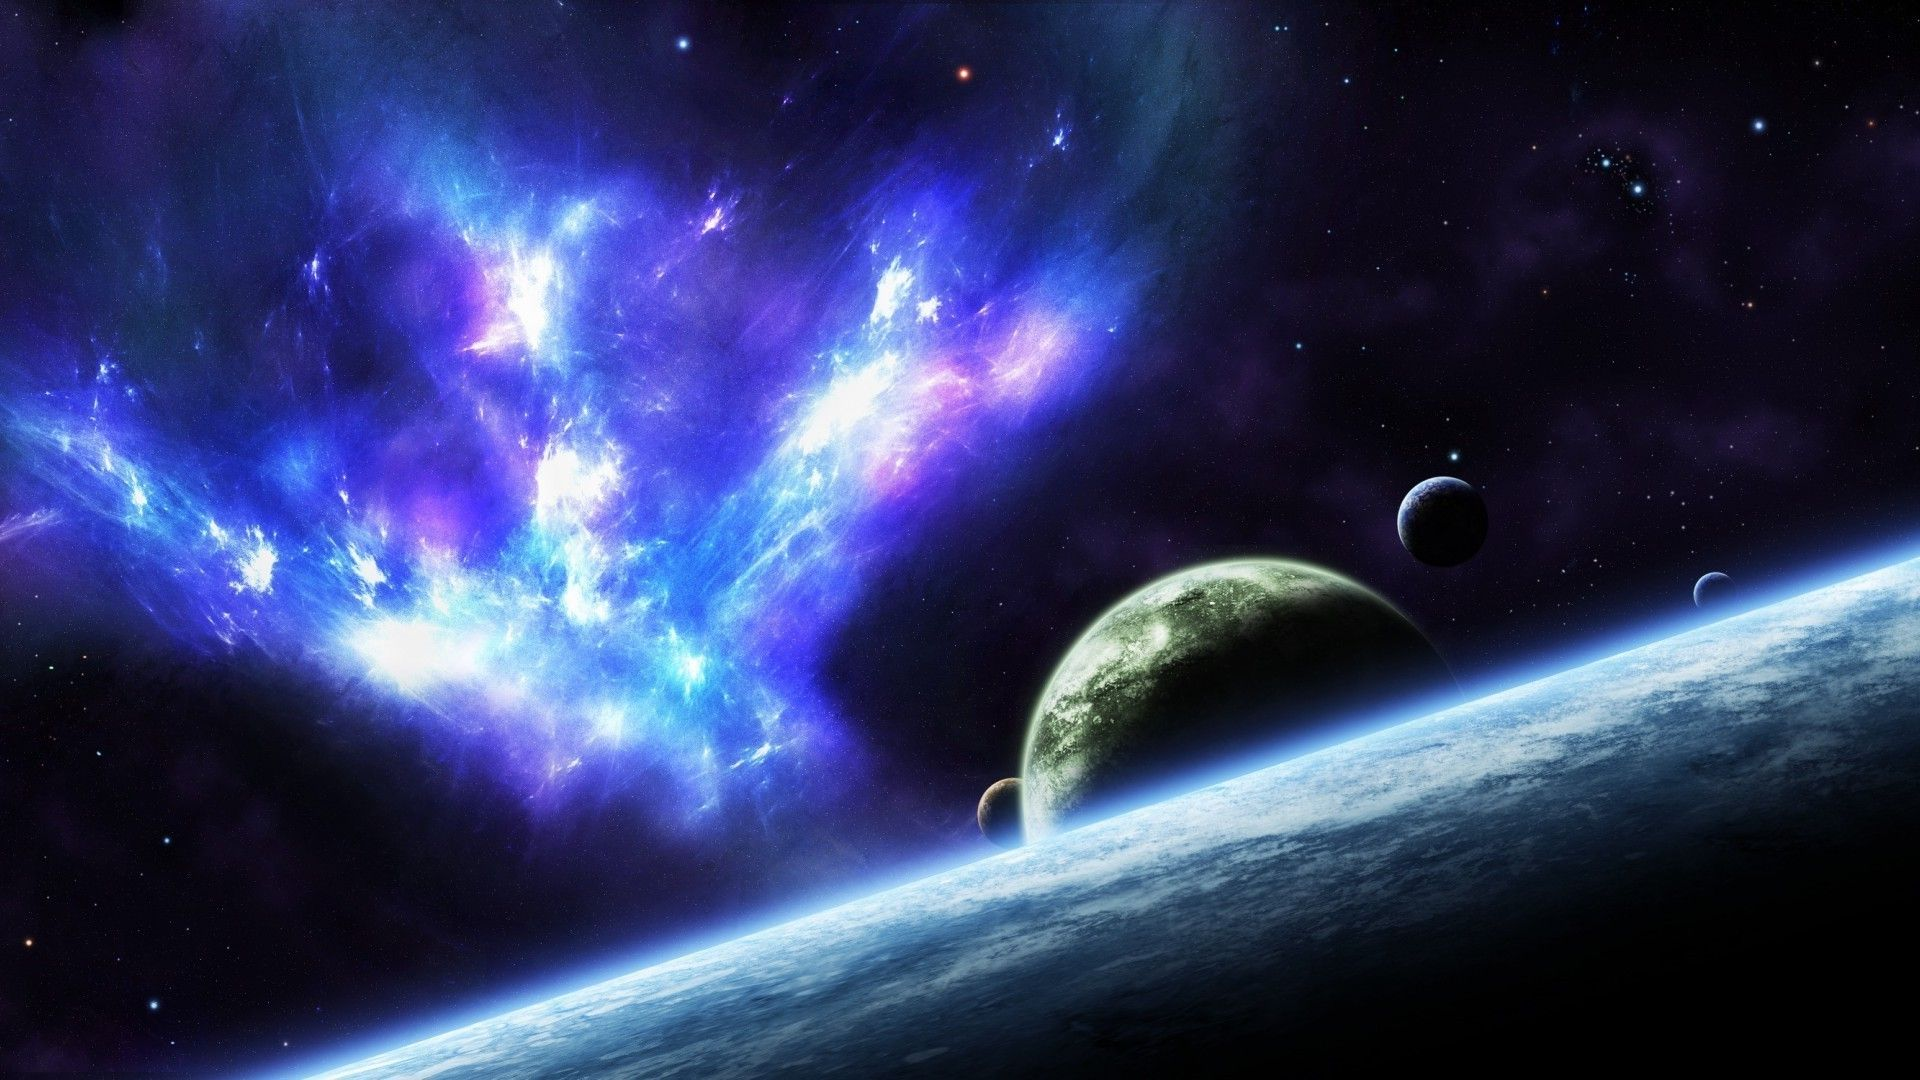 Space Themed hd wallpaper 1080